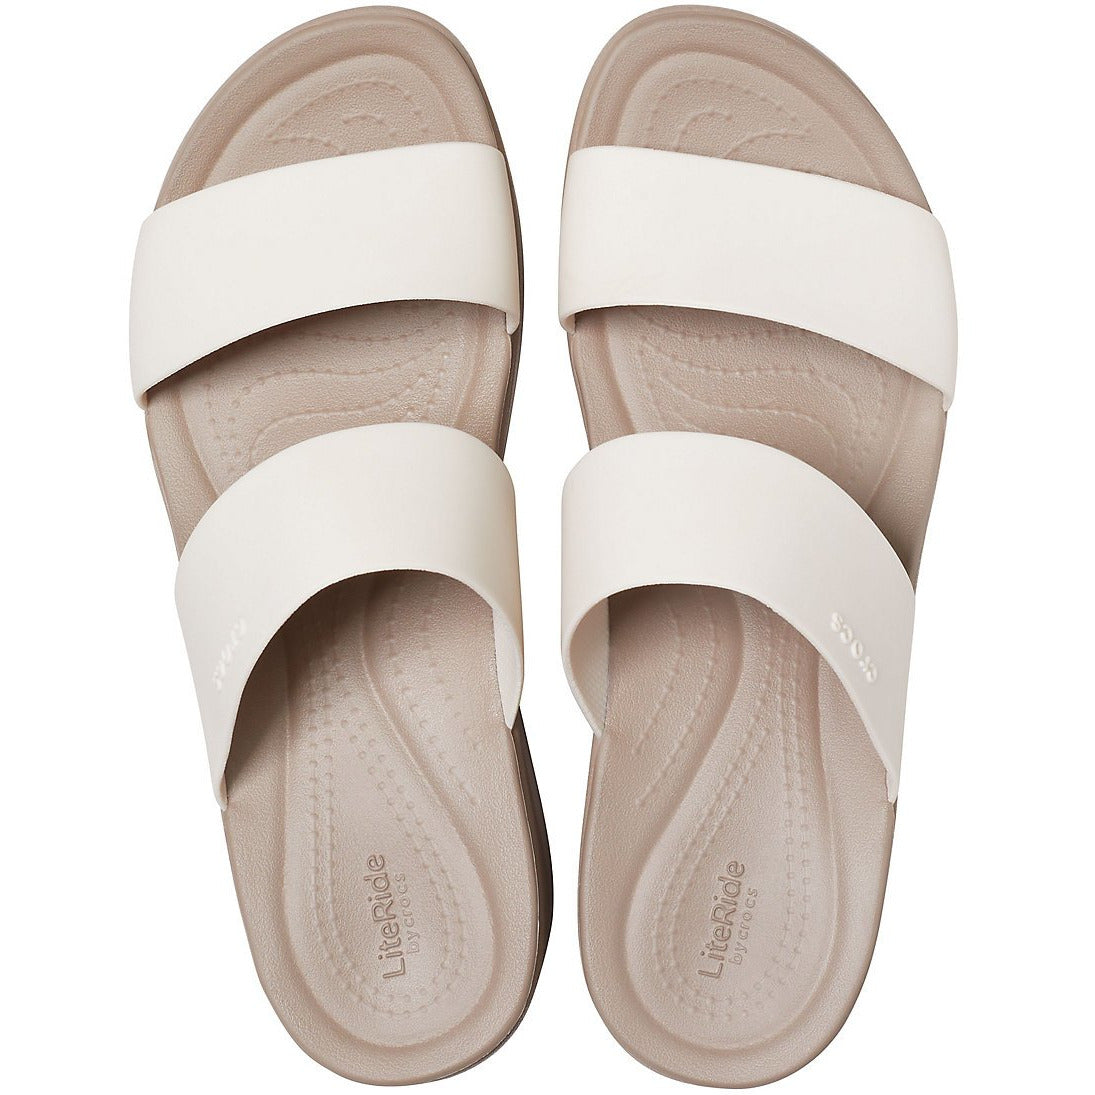 CROCS CROCS BROOKLYN MID WEDGE STUCCO/MUSHROOM getset-footwear.myshopify.com